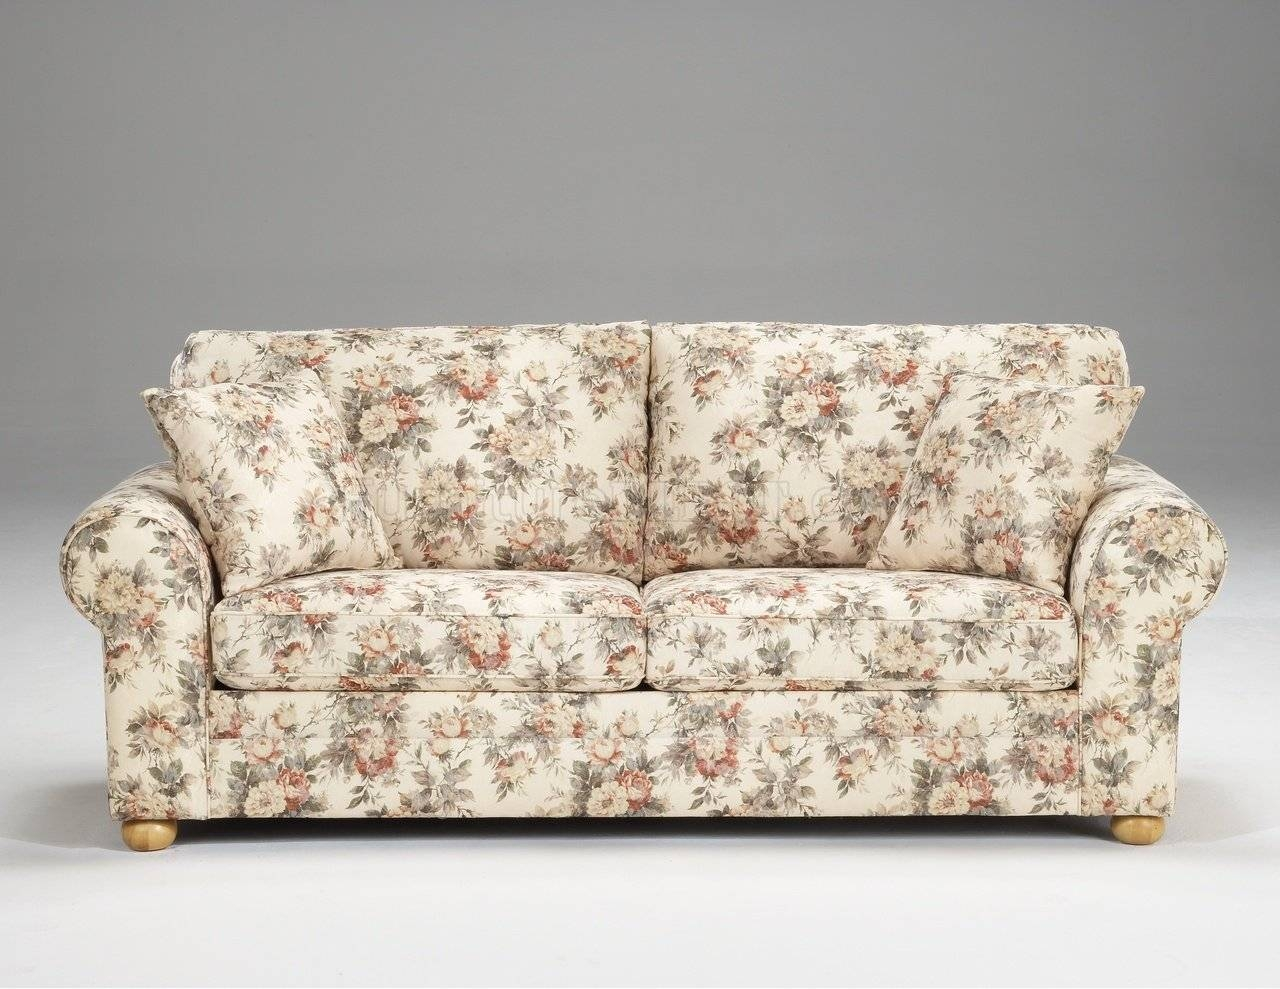 Floral Sofas In Style | Sofas Decoration with Floral Sofas And Chairs (Image 7 of 15)